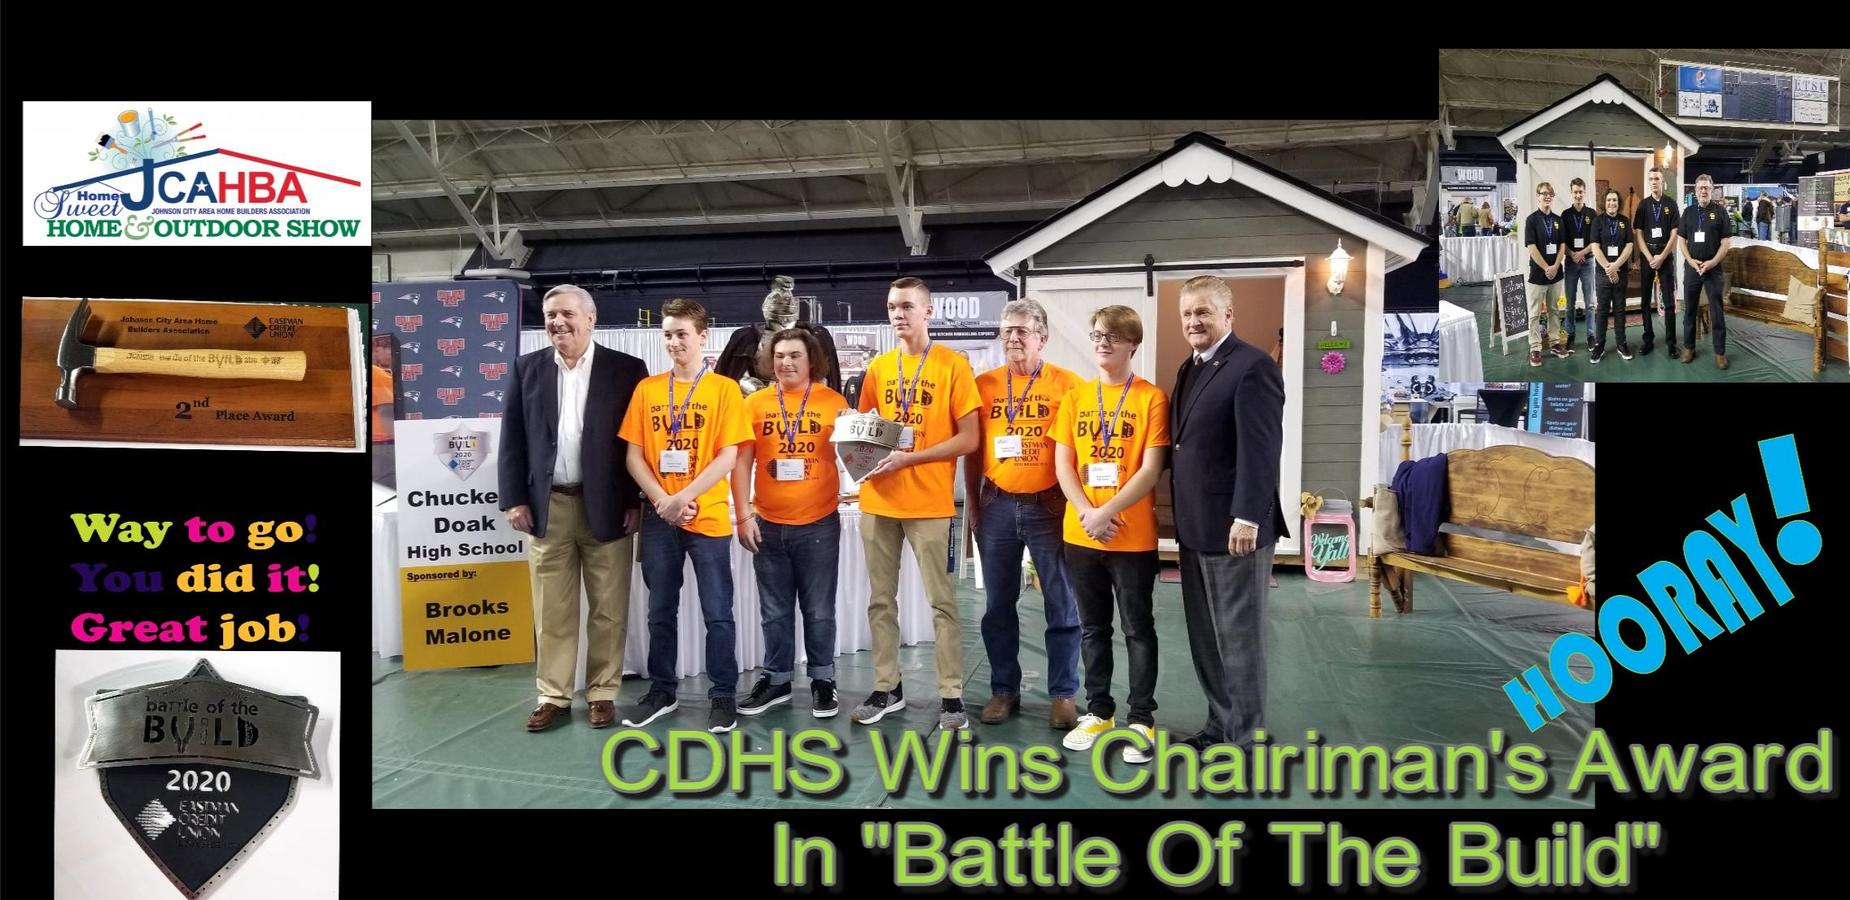 CDHS Wins Chairman's Award and 2nd place overall at Battle of the Build